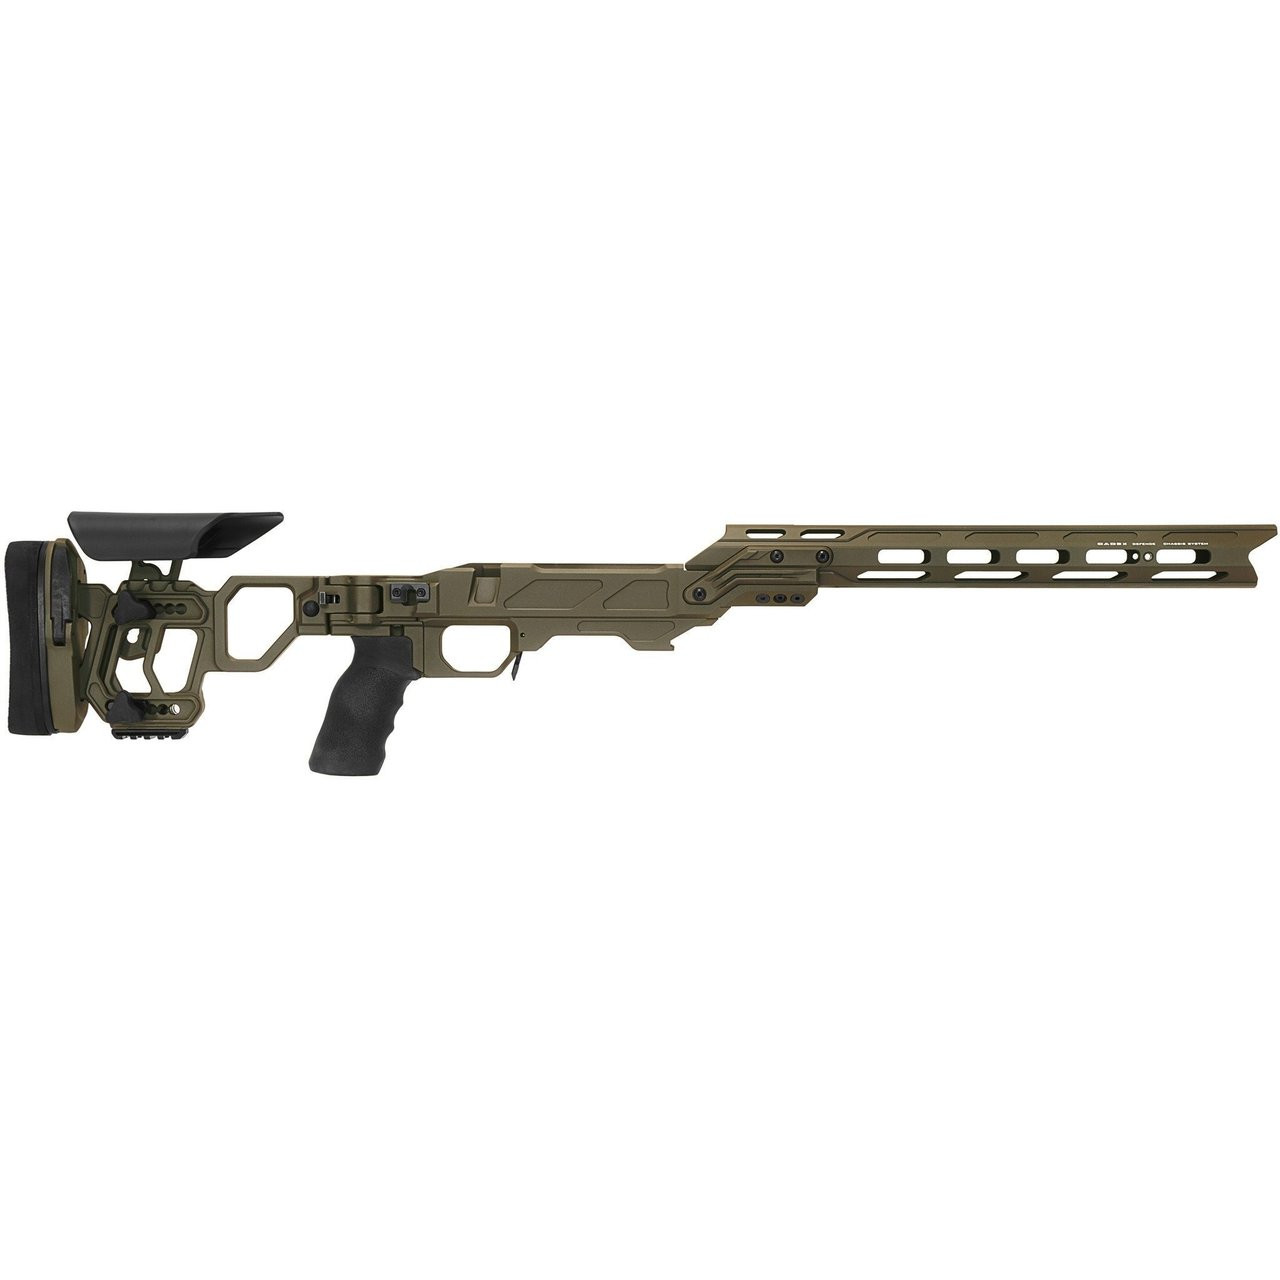 Cadex Lite Competition Chassis with Skeleton stock for Rem 700